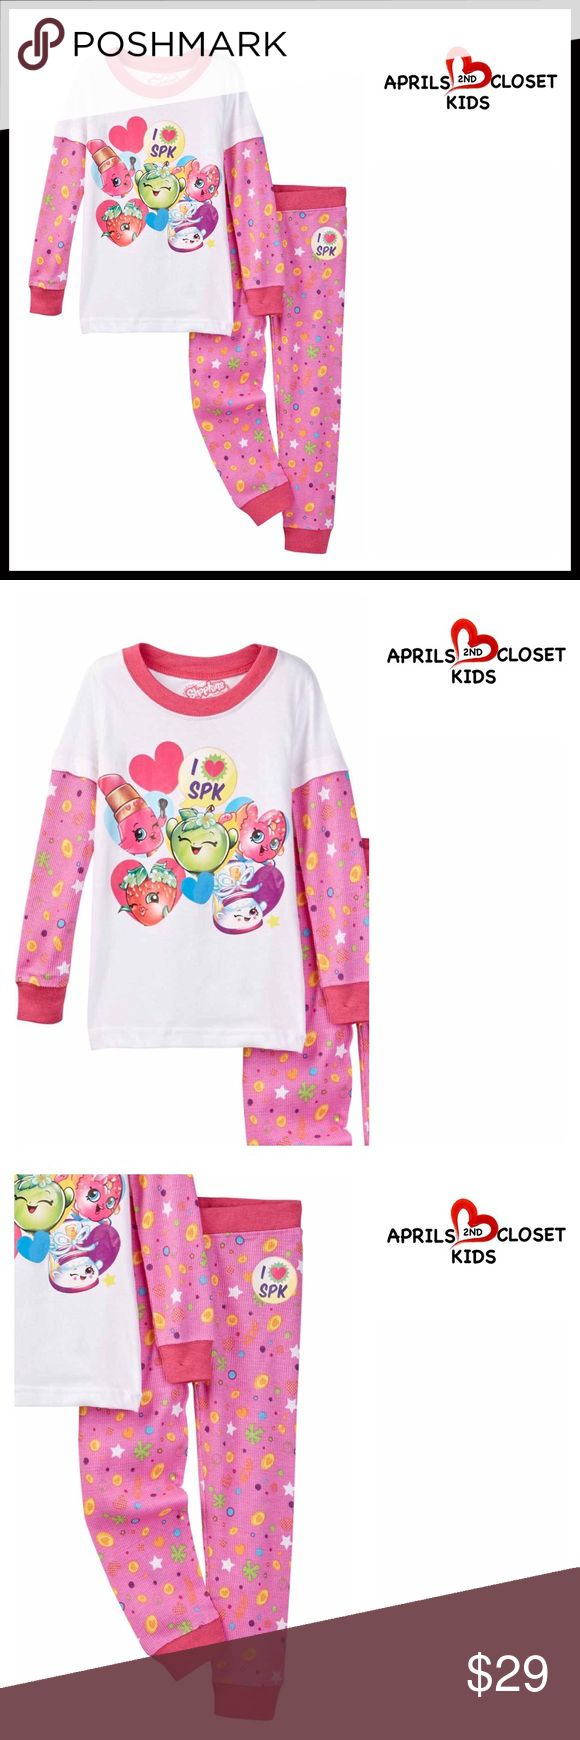 SHOPKINS Pajama Set 2-Piece 💟NEW WITH TAGS💟  SHOPKINS Pajama Set  * Super soft & comfy  * 2 piece set  * Ribbed trim  * Long two-fer waffle print sleeve top  * Front graphic print   * Elastic waist pants & jogger cuff   Material: 100% cotton Color: Heart pink  Item# Search words #   🚫No Trades🚫 ✅ Offers Considered*✅ *Please use the blue 'offer' button to submit an offer. Shopkins Pajamas Pajama Sets